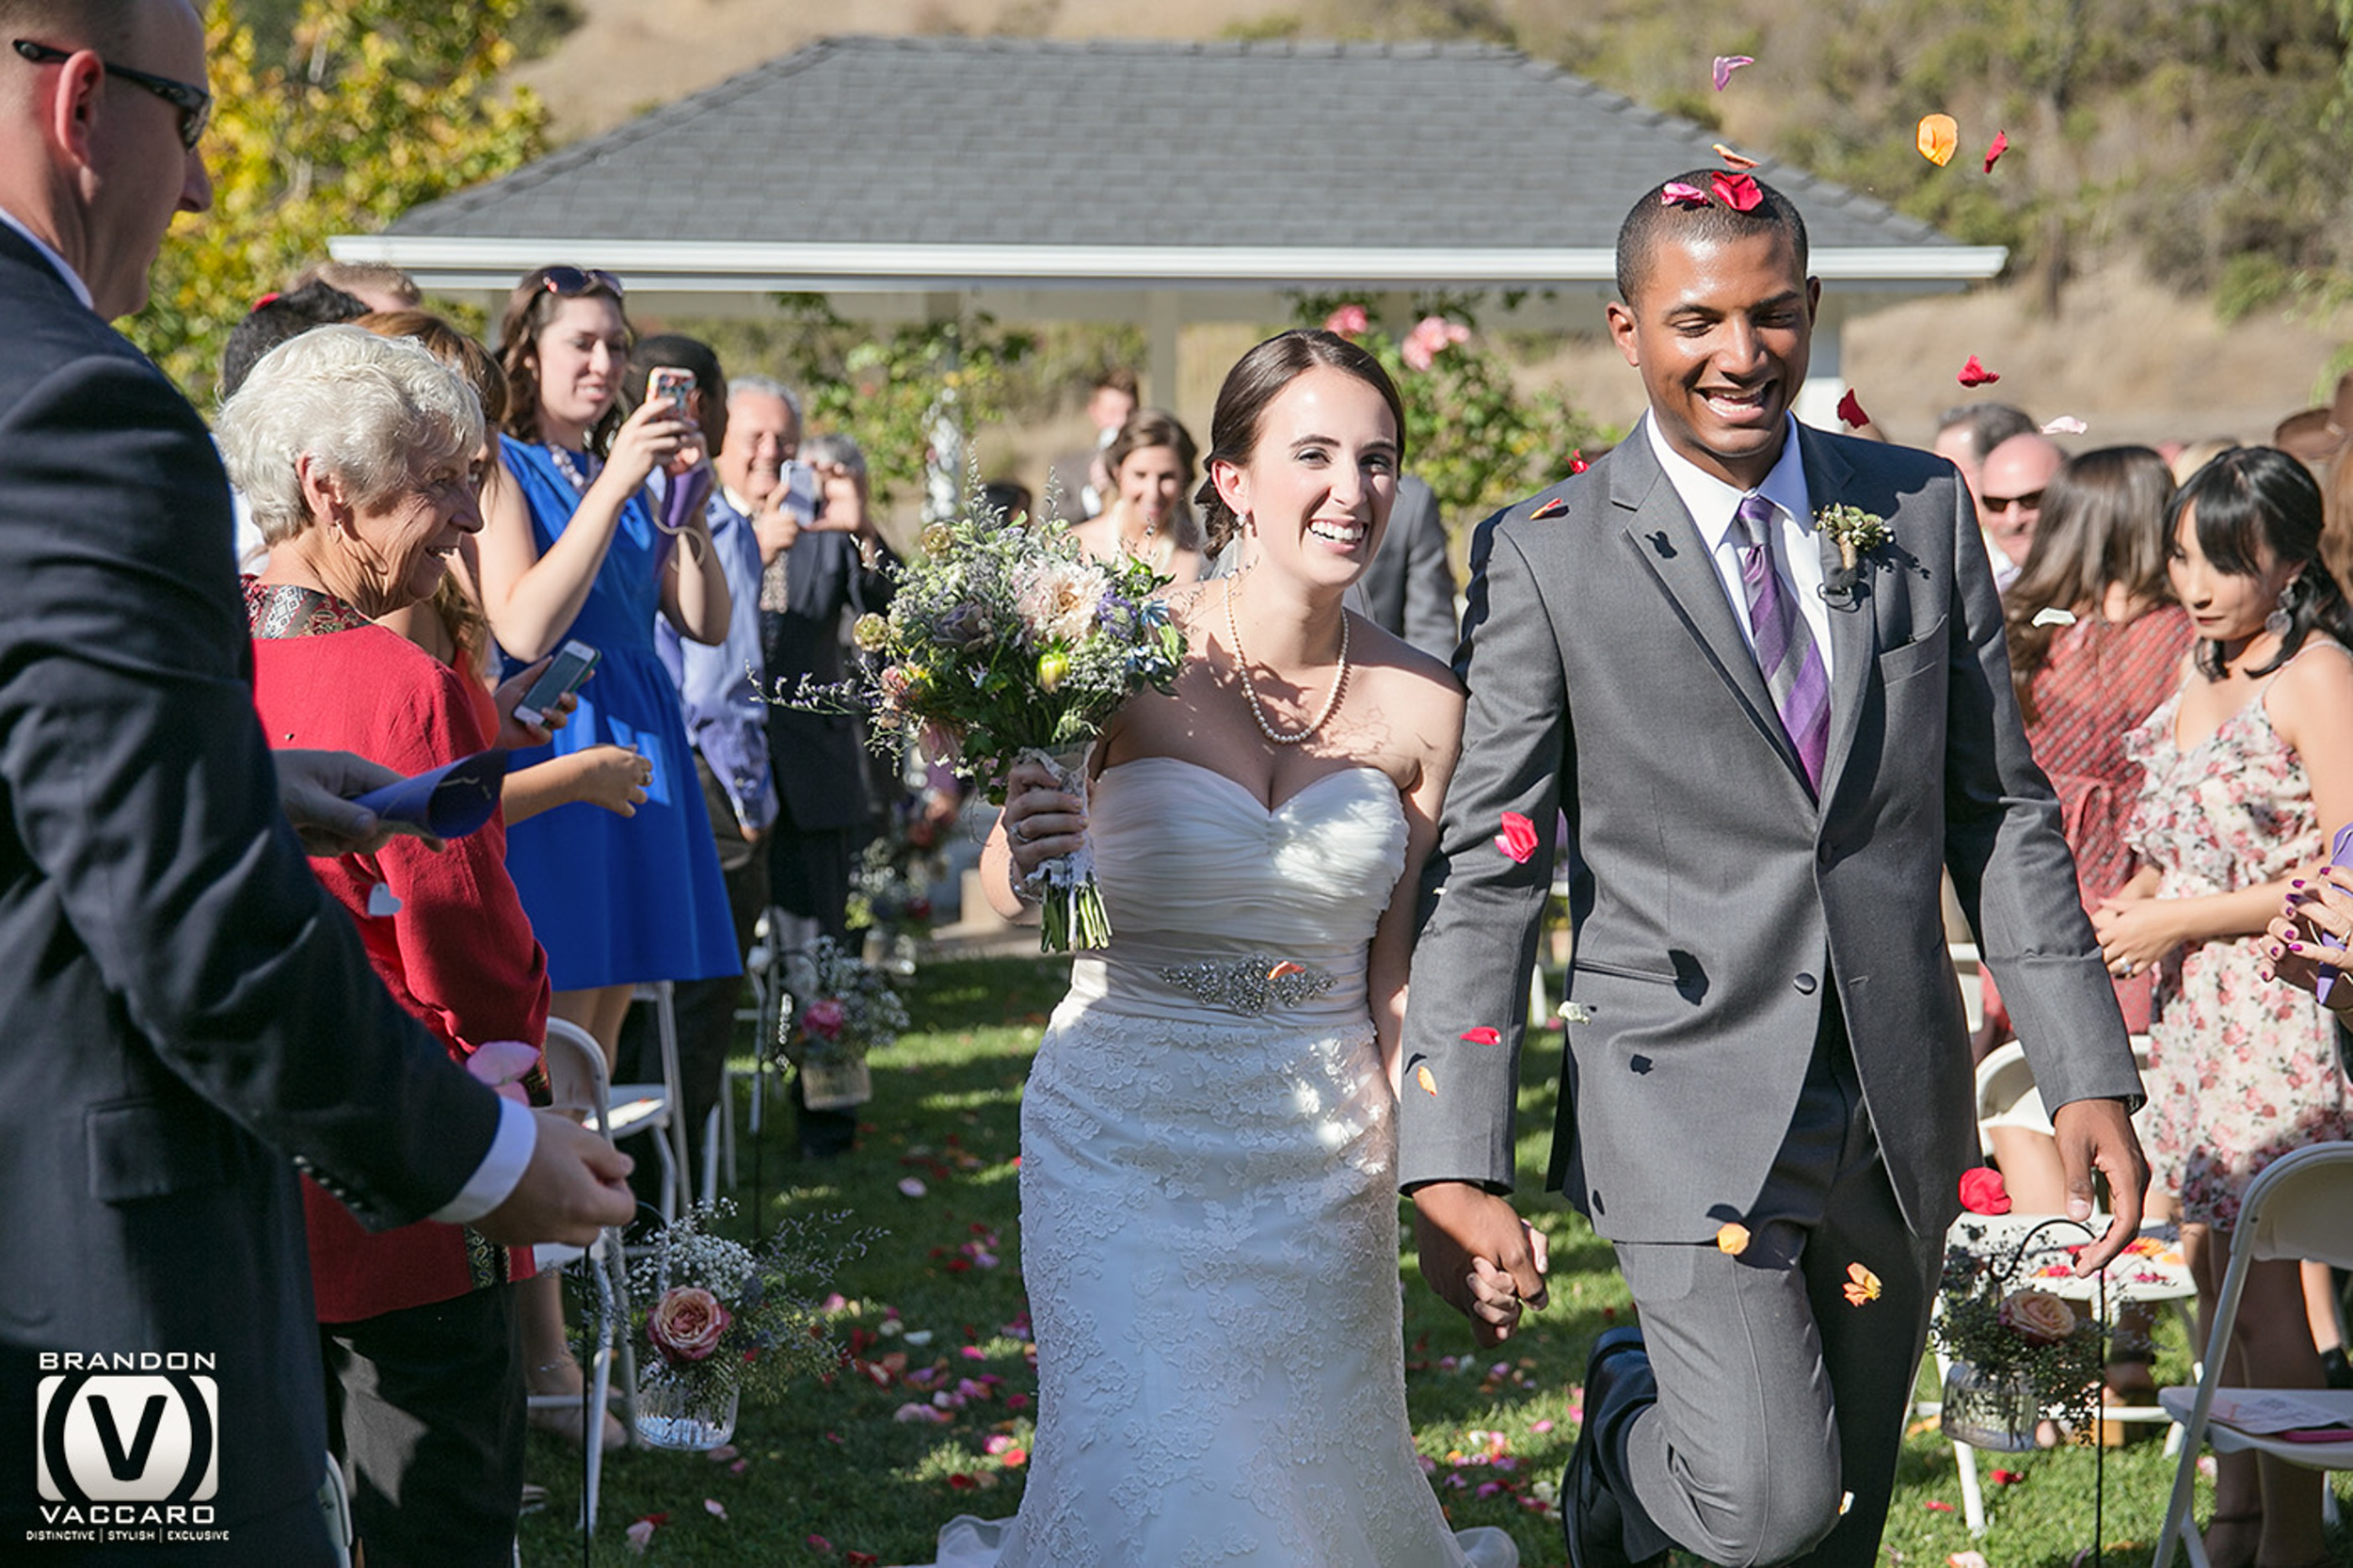 real-wedding-country-style-la-honda-bride-and-groom-processional.jpg